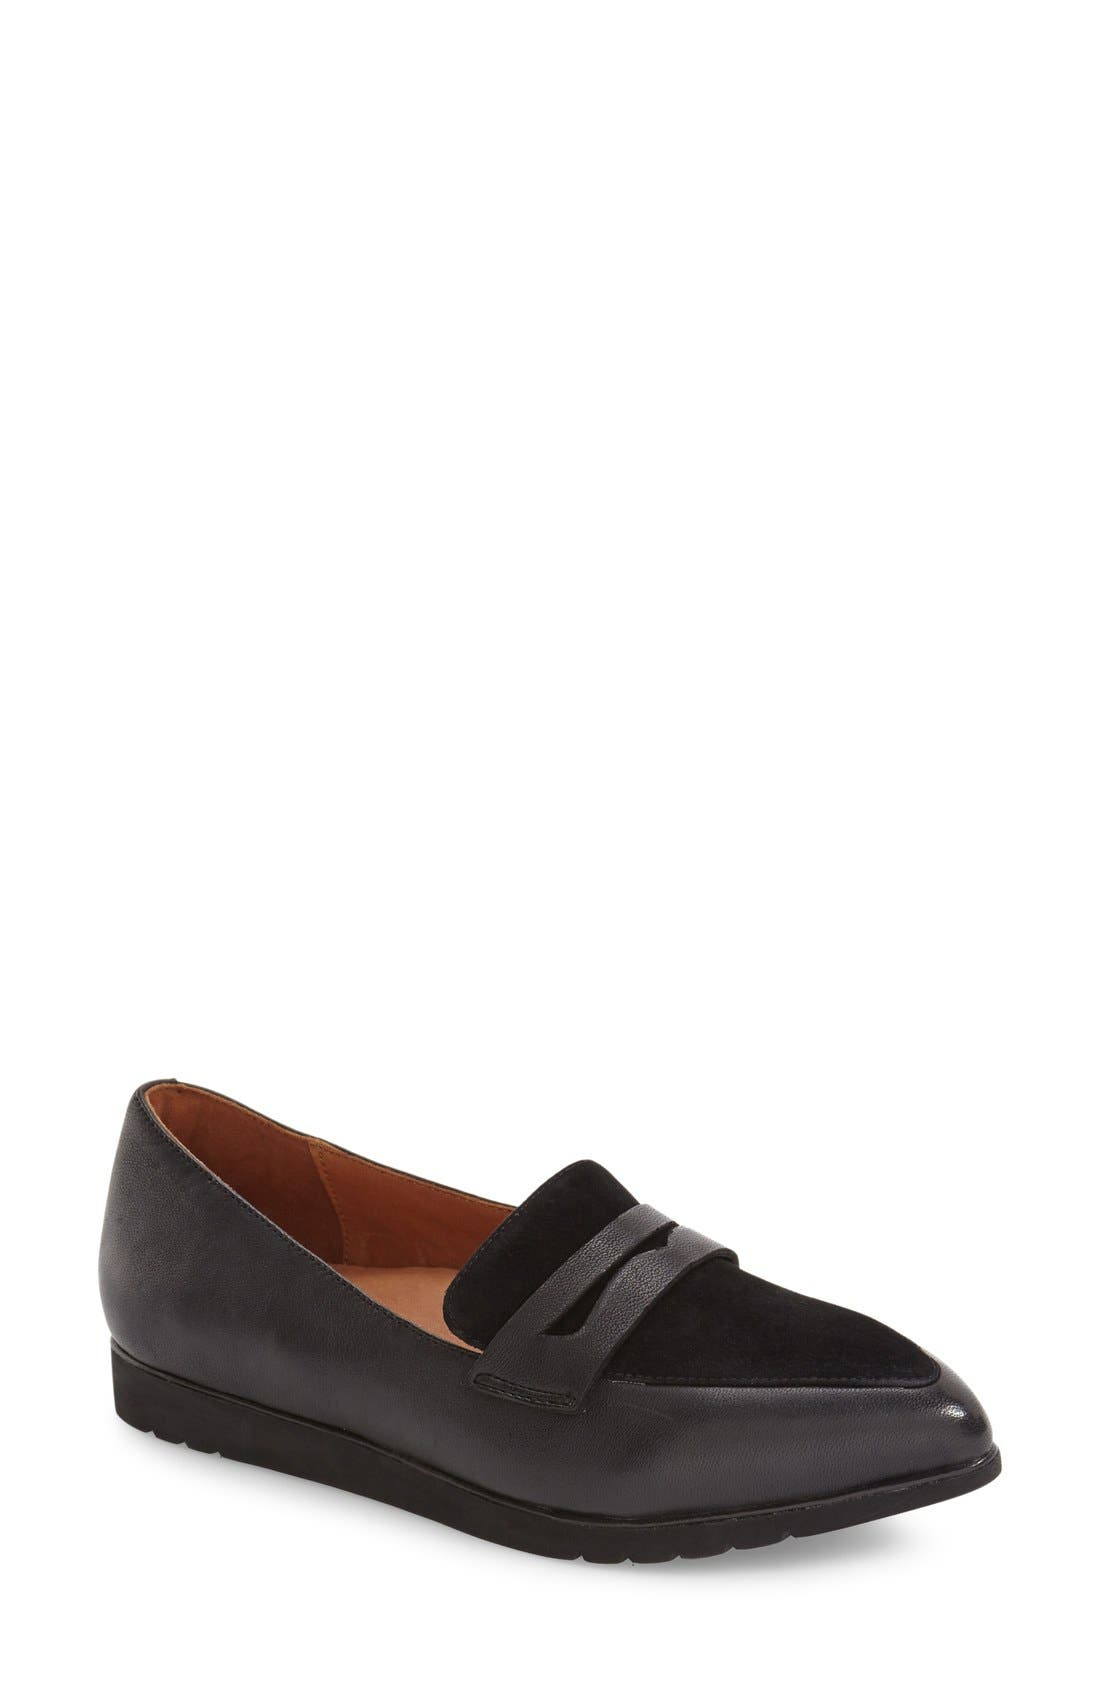 L'AMOUR DES PIEDS 'Miamore' Pointy Toe Loafer